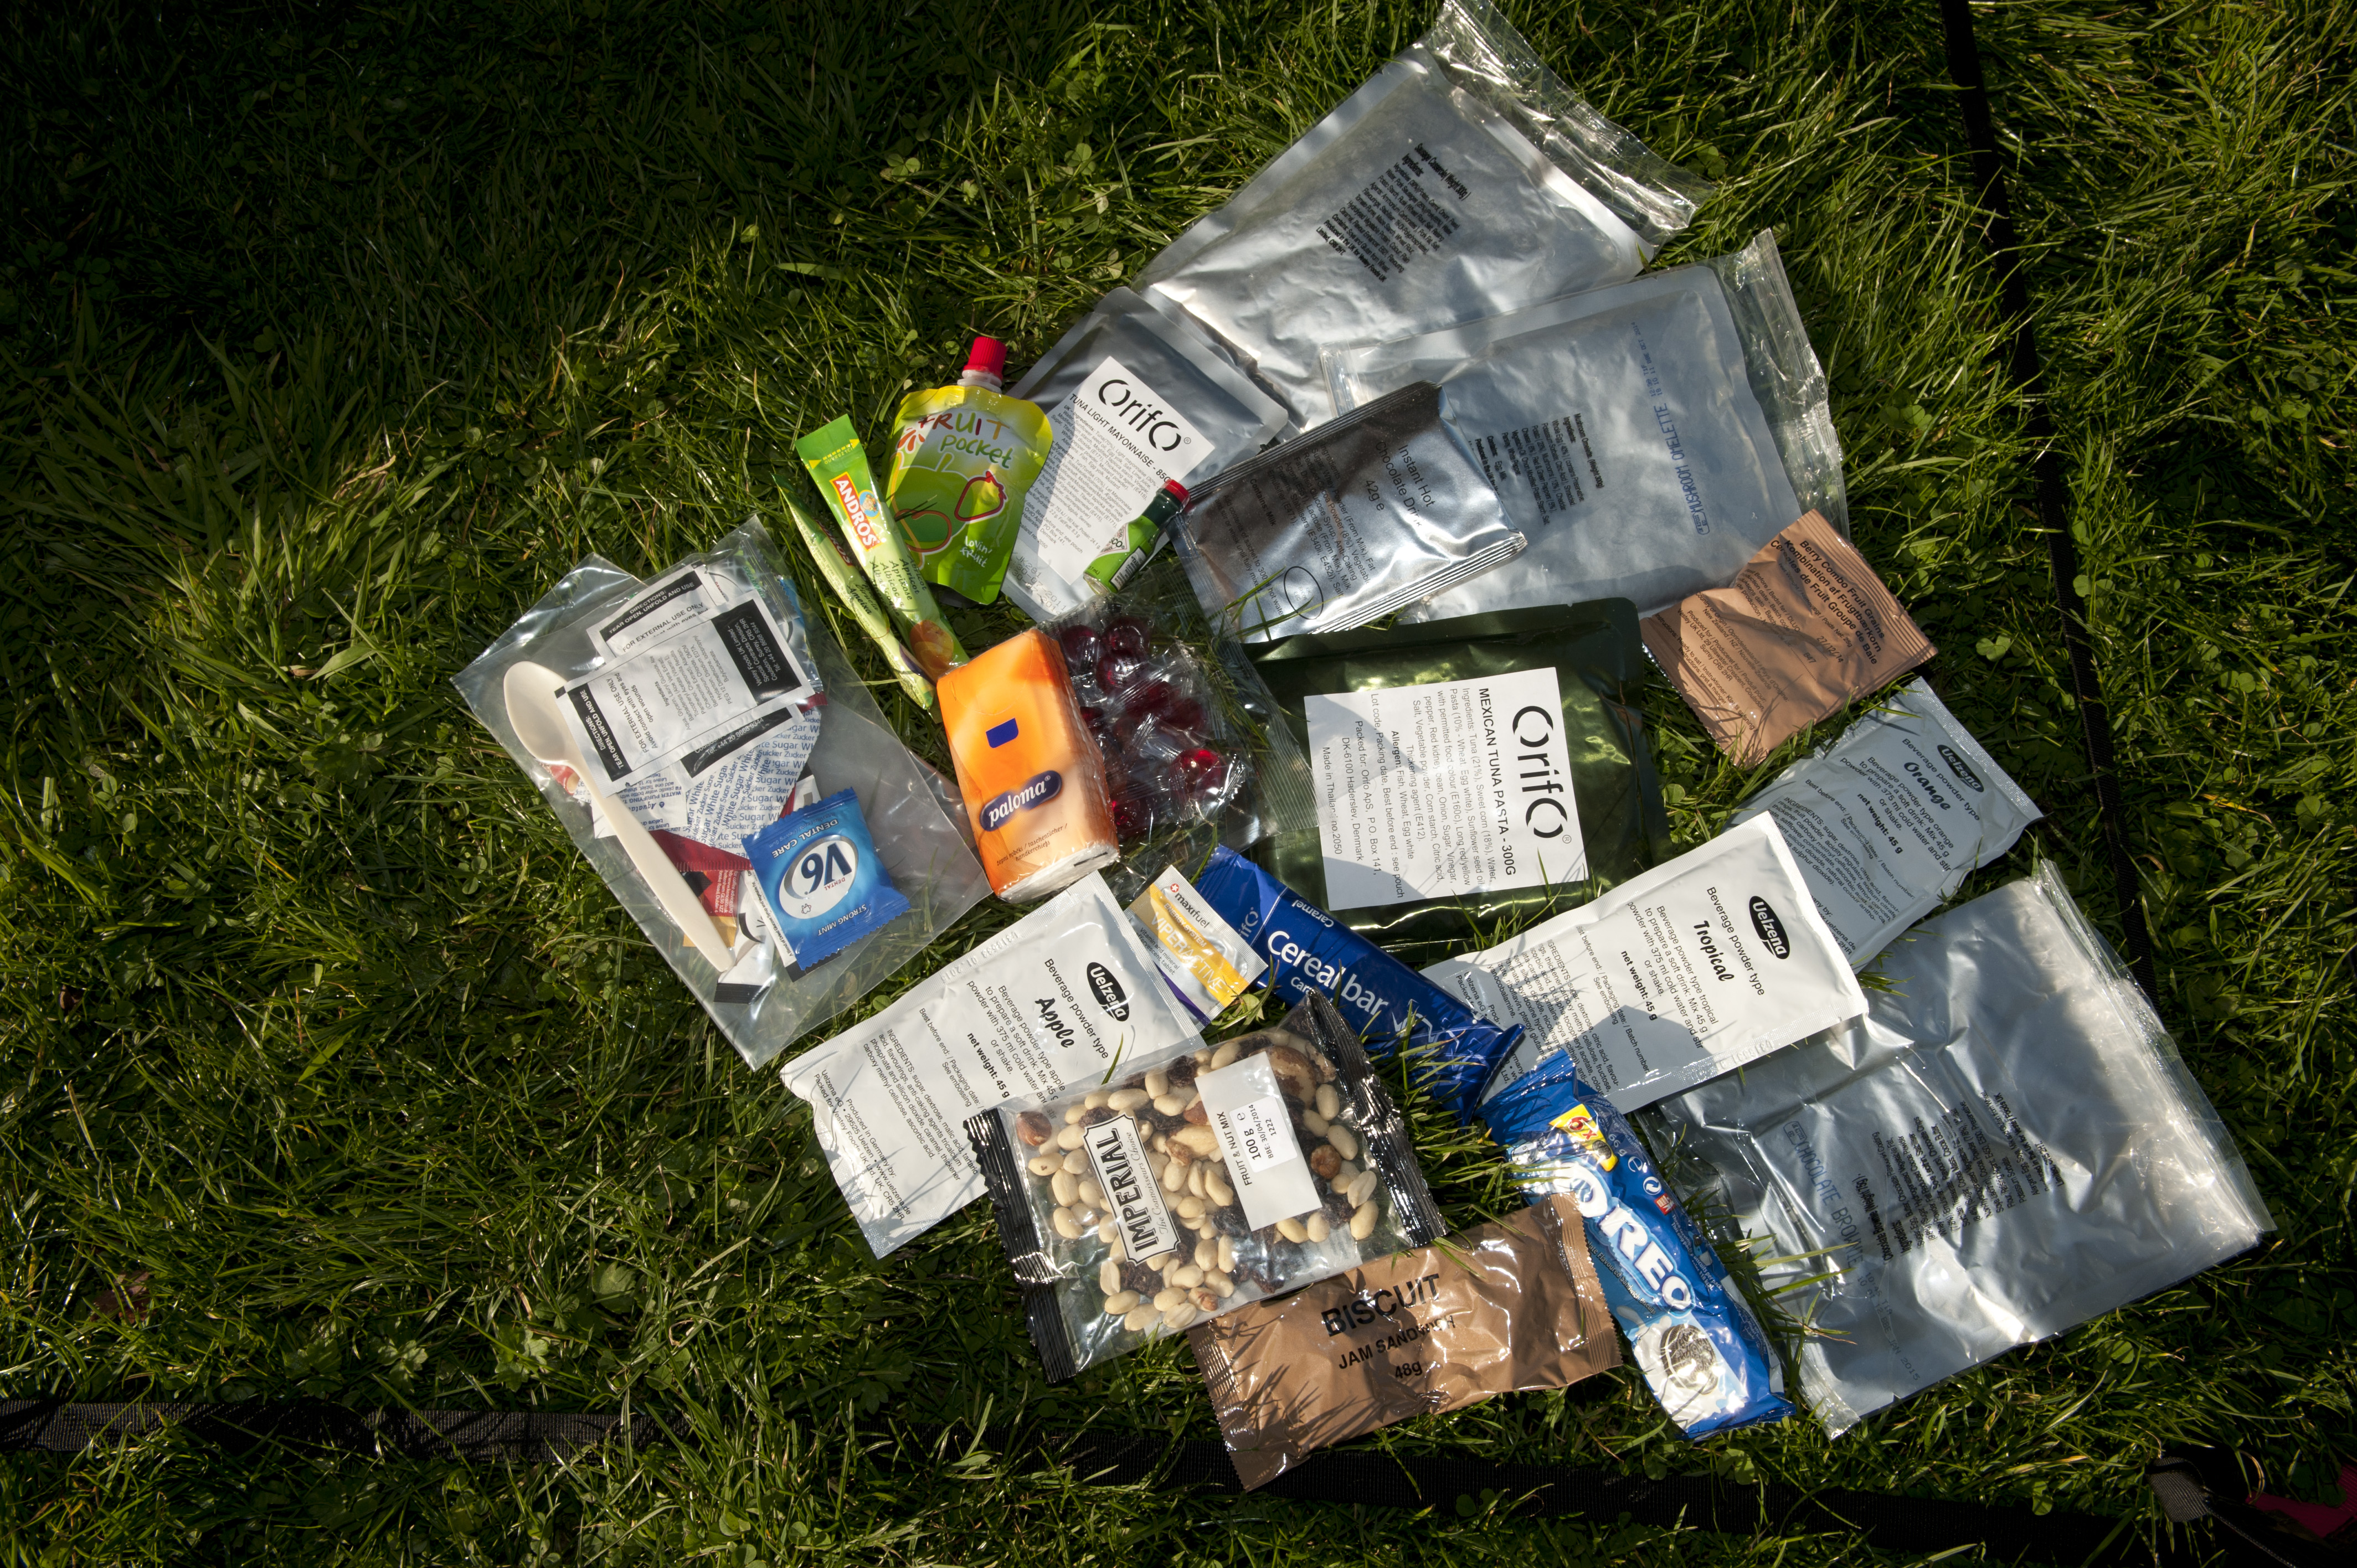 What's in your panniers?